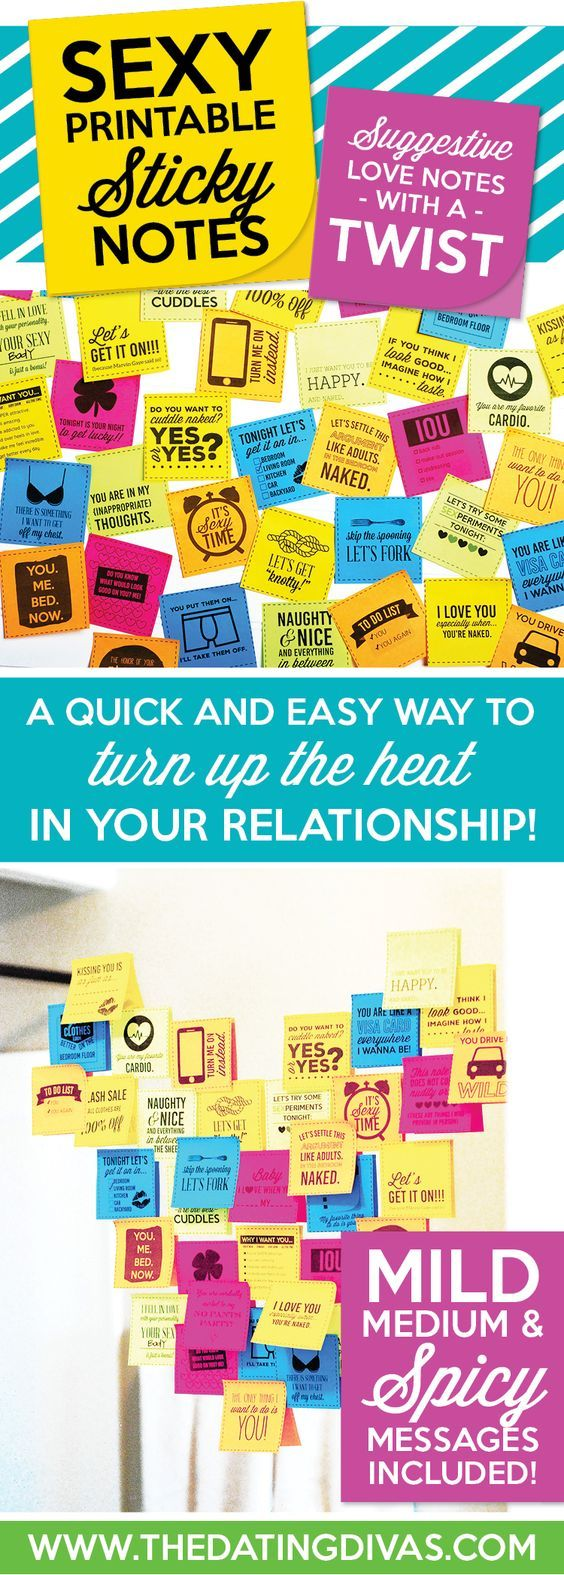 Printable sticky love notes you can leave for your love!